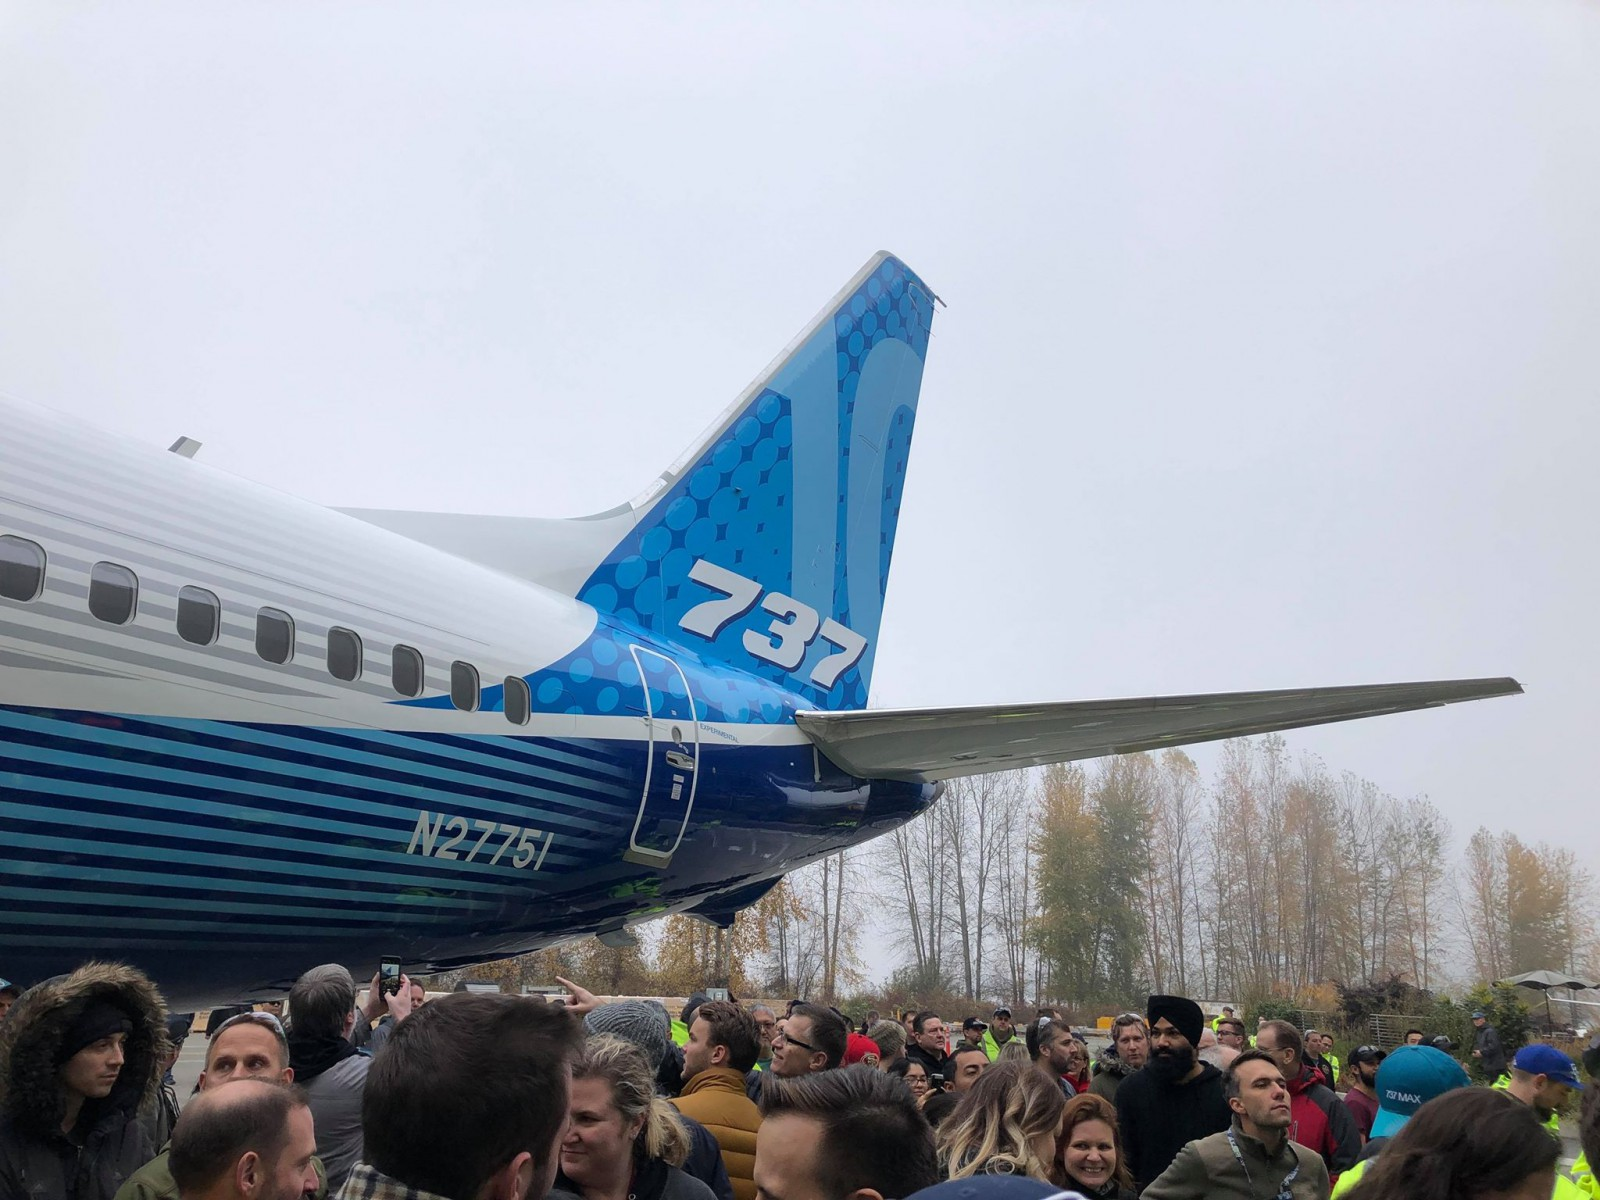 Boeing unveils a new 737 MAX even as grounding drags on